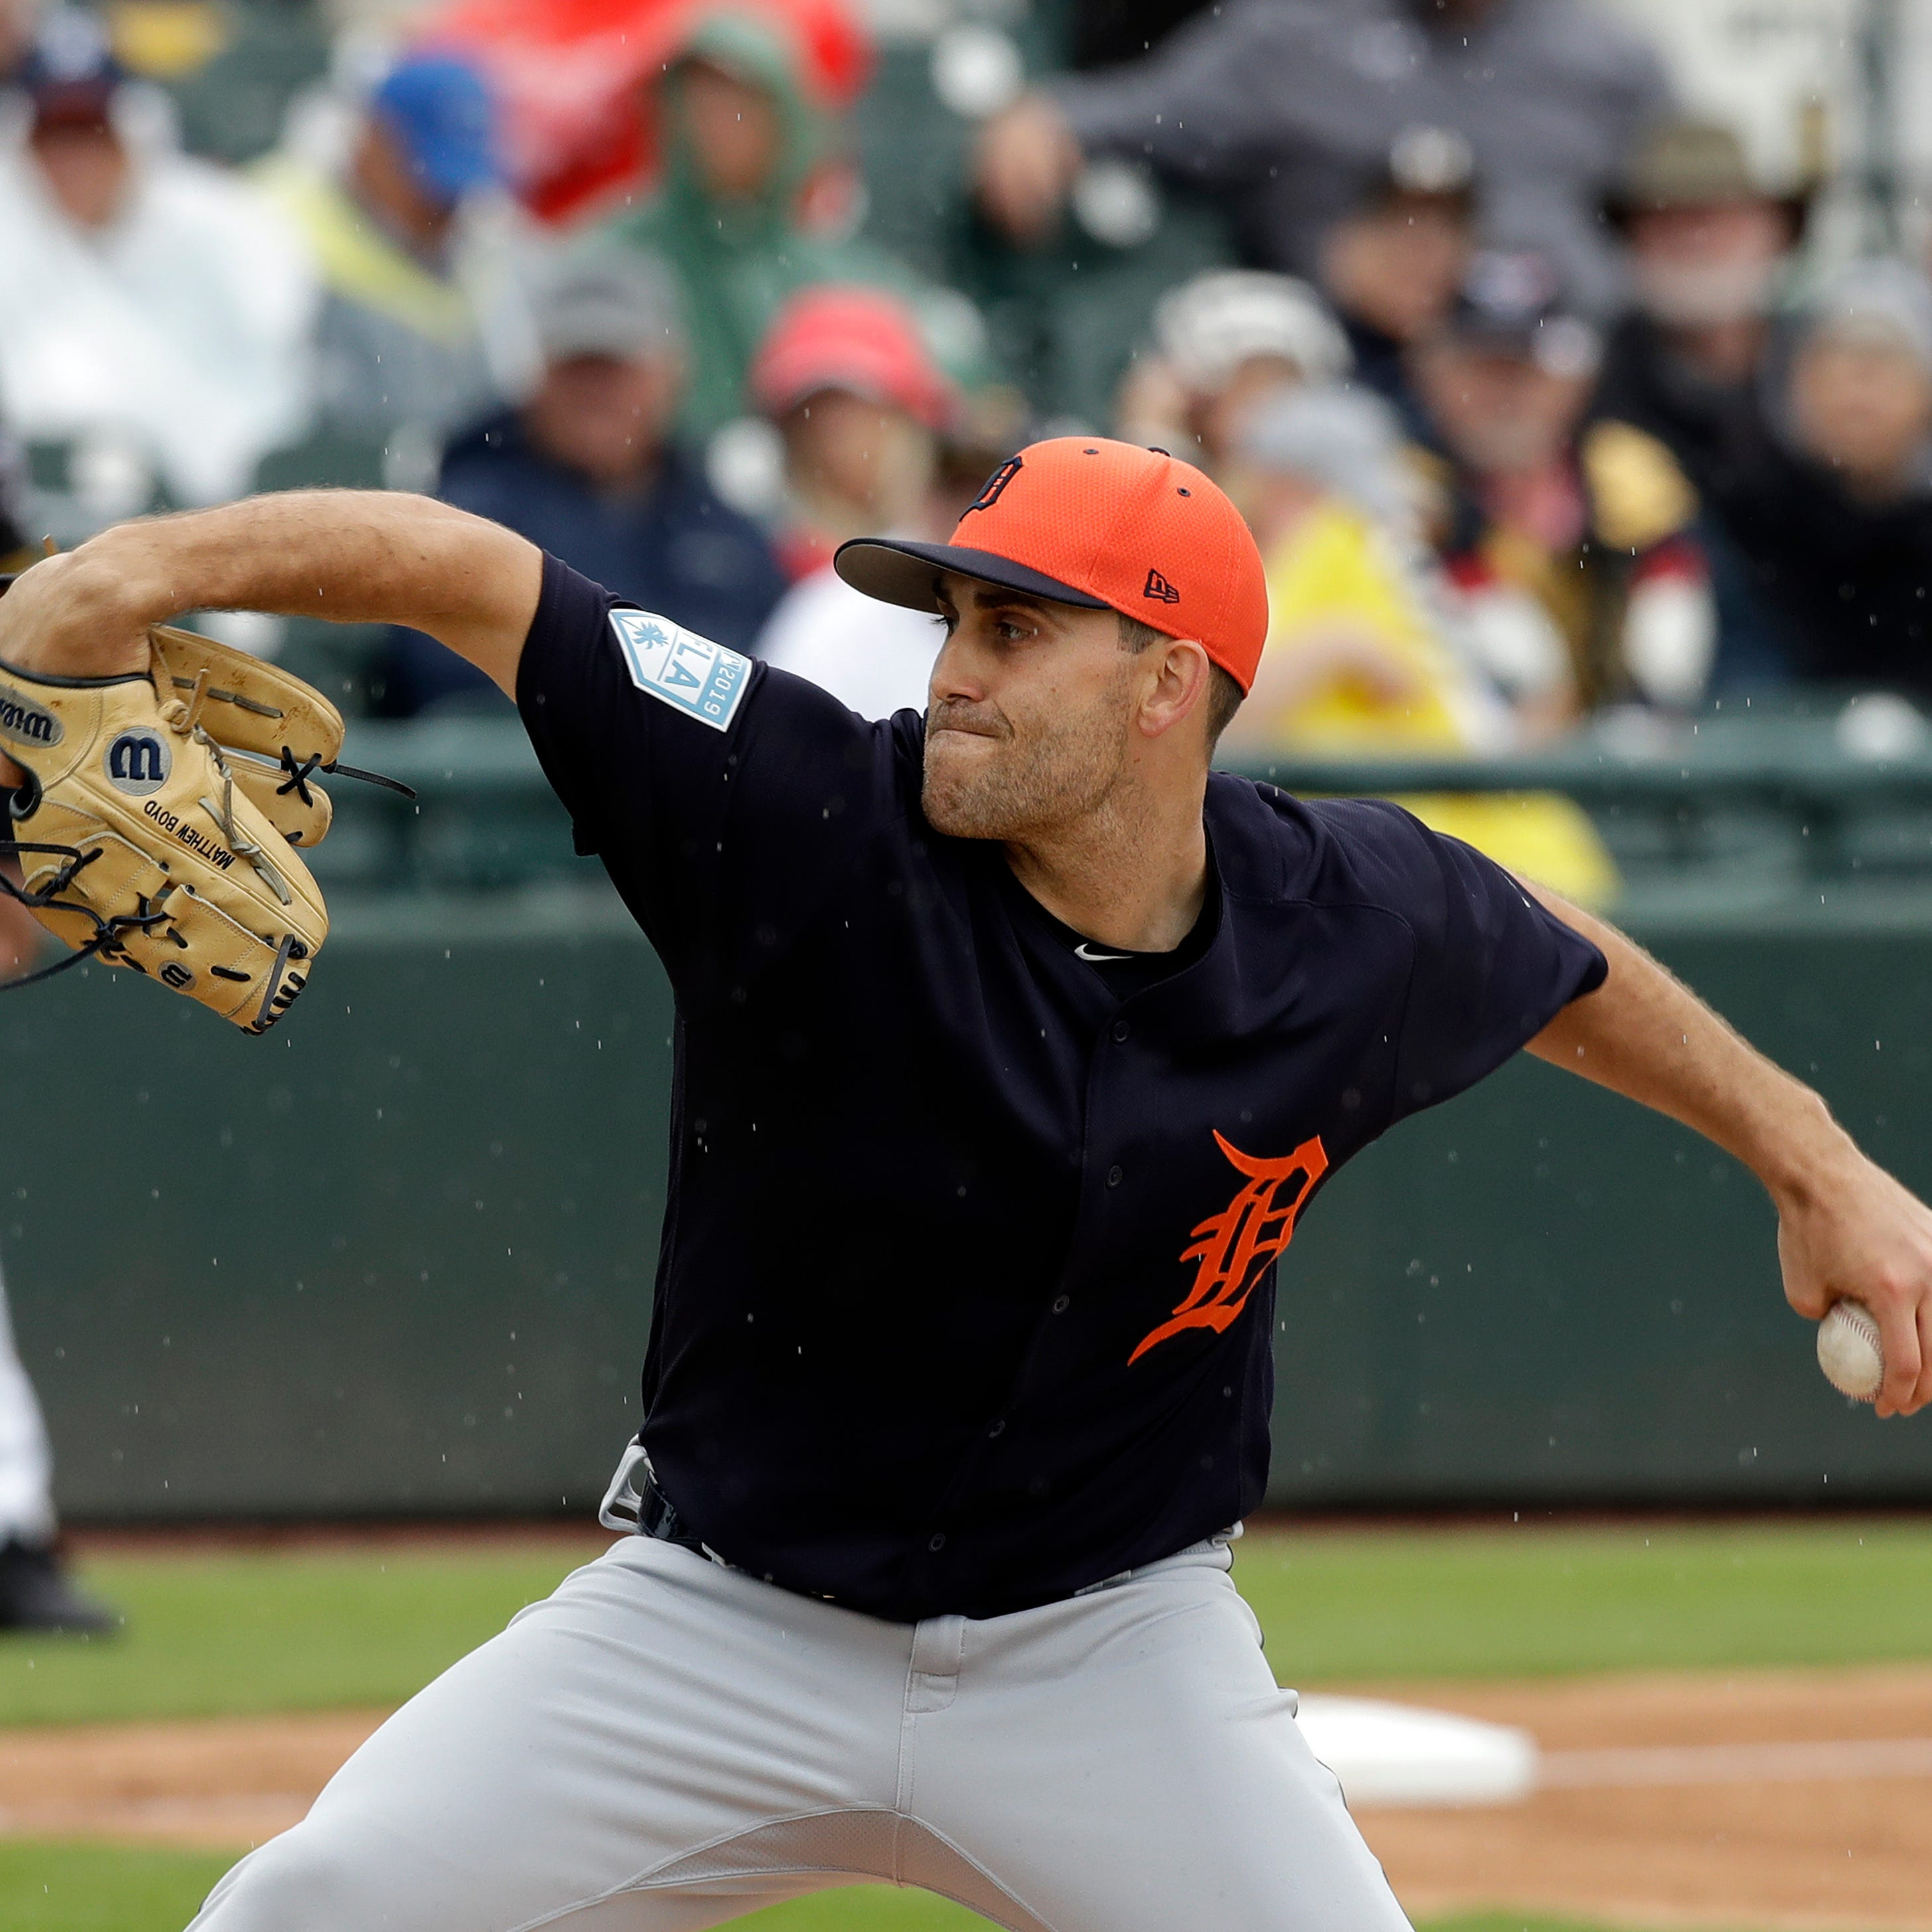 Matthew Boyd throws 92 pitches in likely final Grapefruit League start; Tigers cut 4